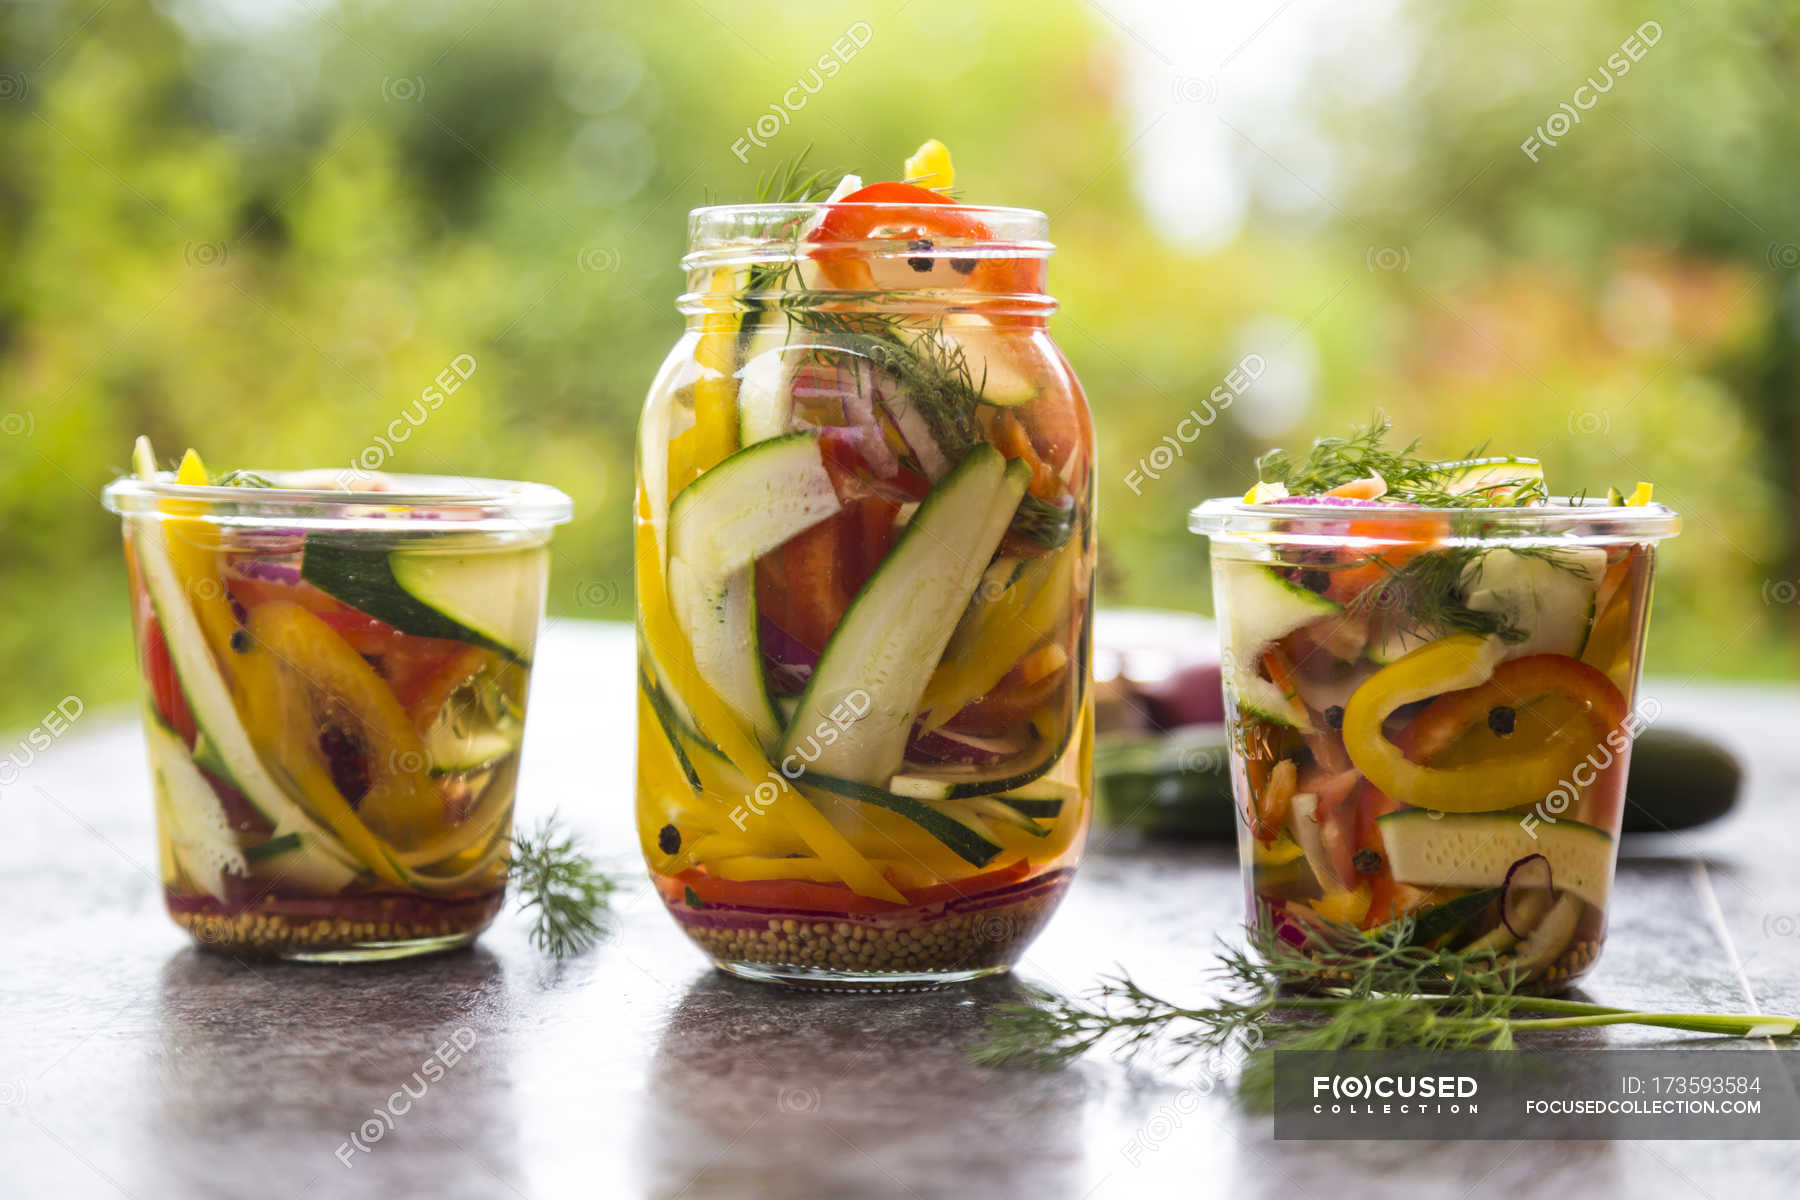 Pickeled Vegetables And Herbs In Preserving Jars Courgette